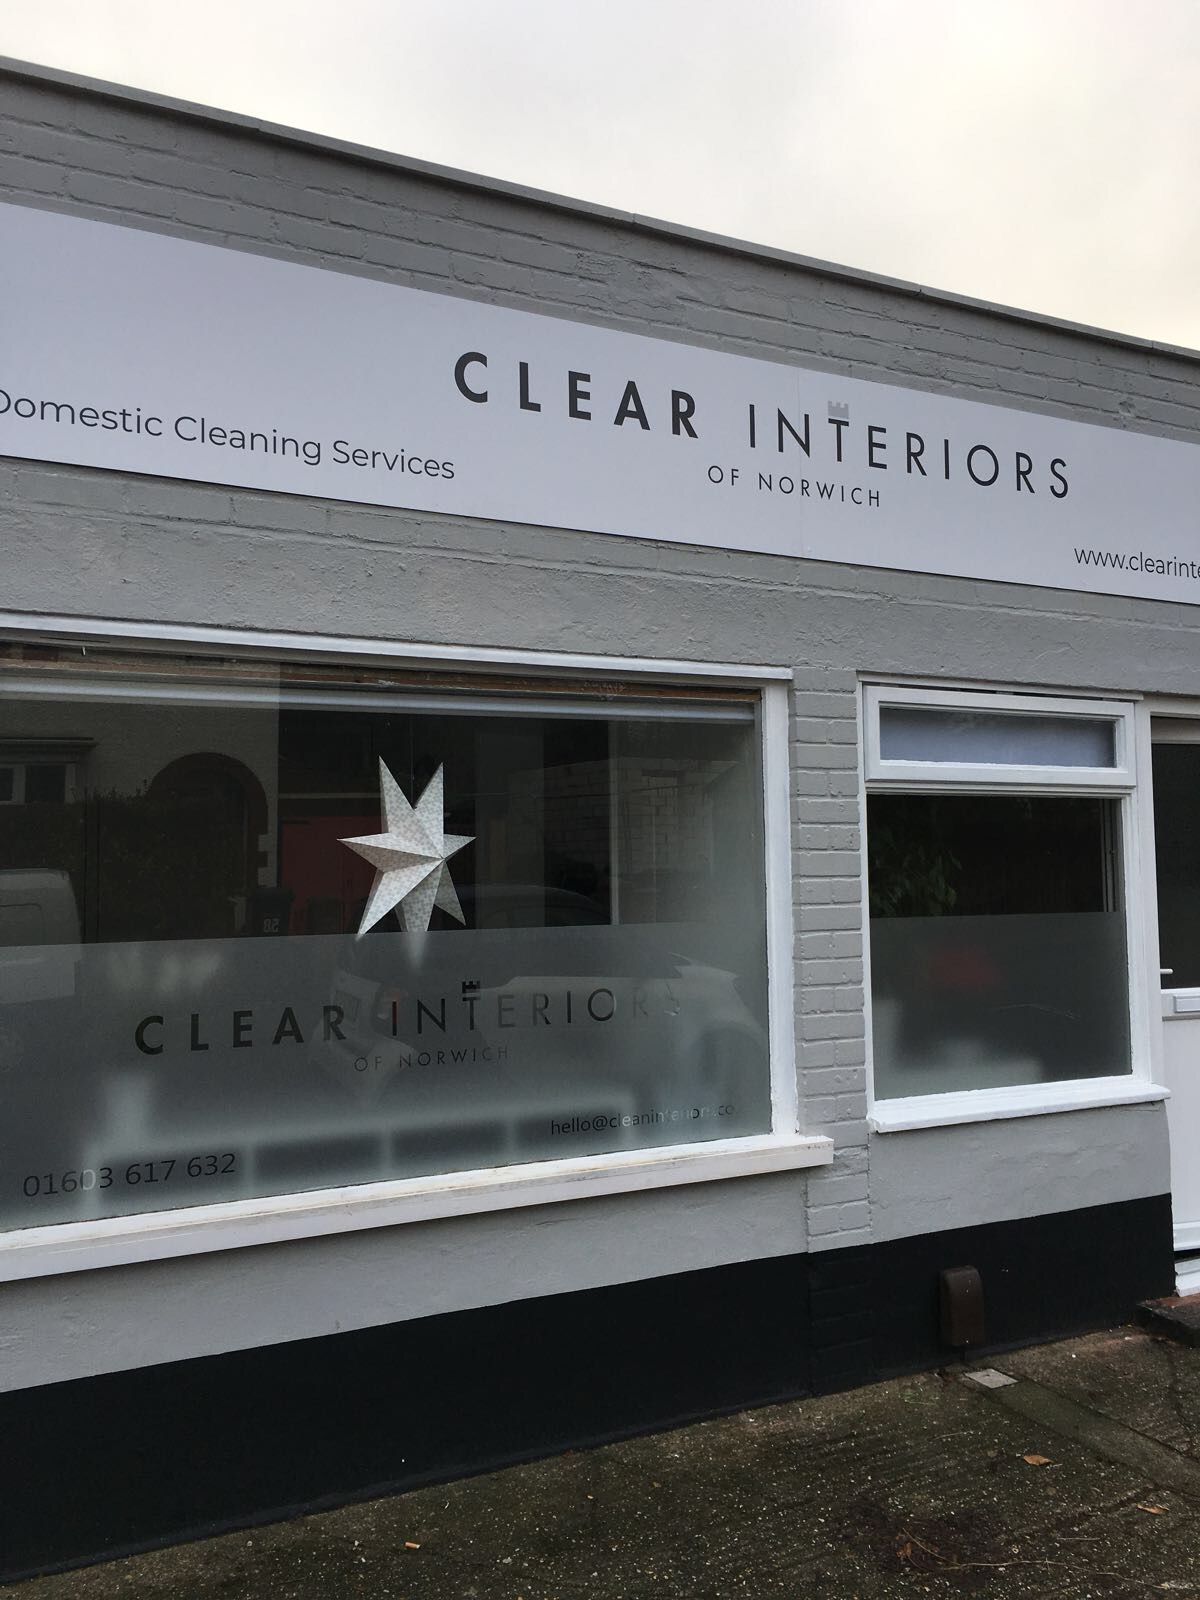 External of Clear Interiors of Norwich Premises